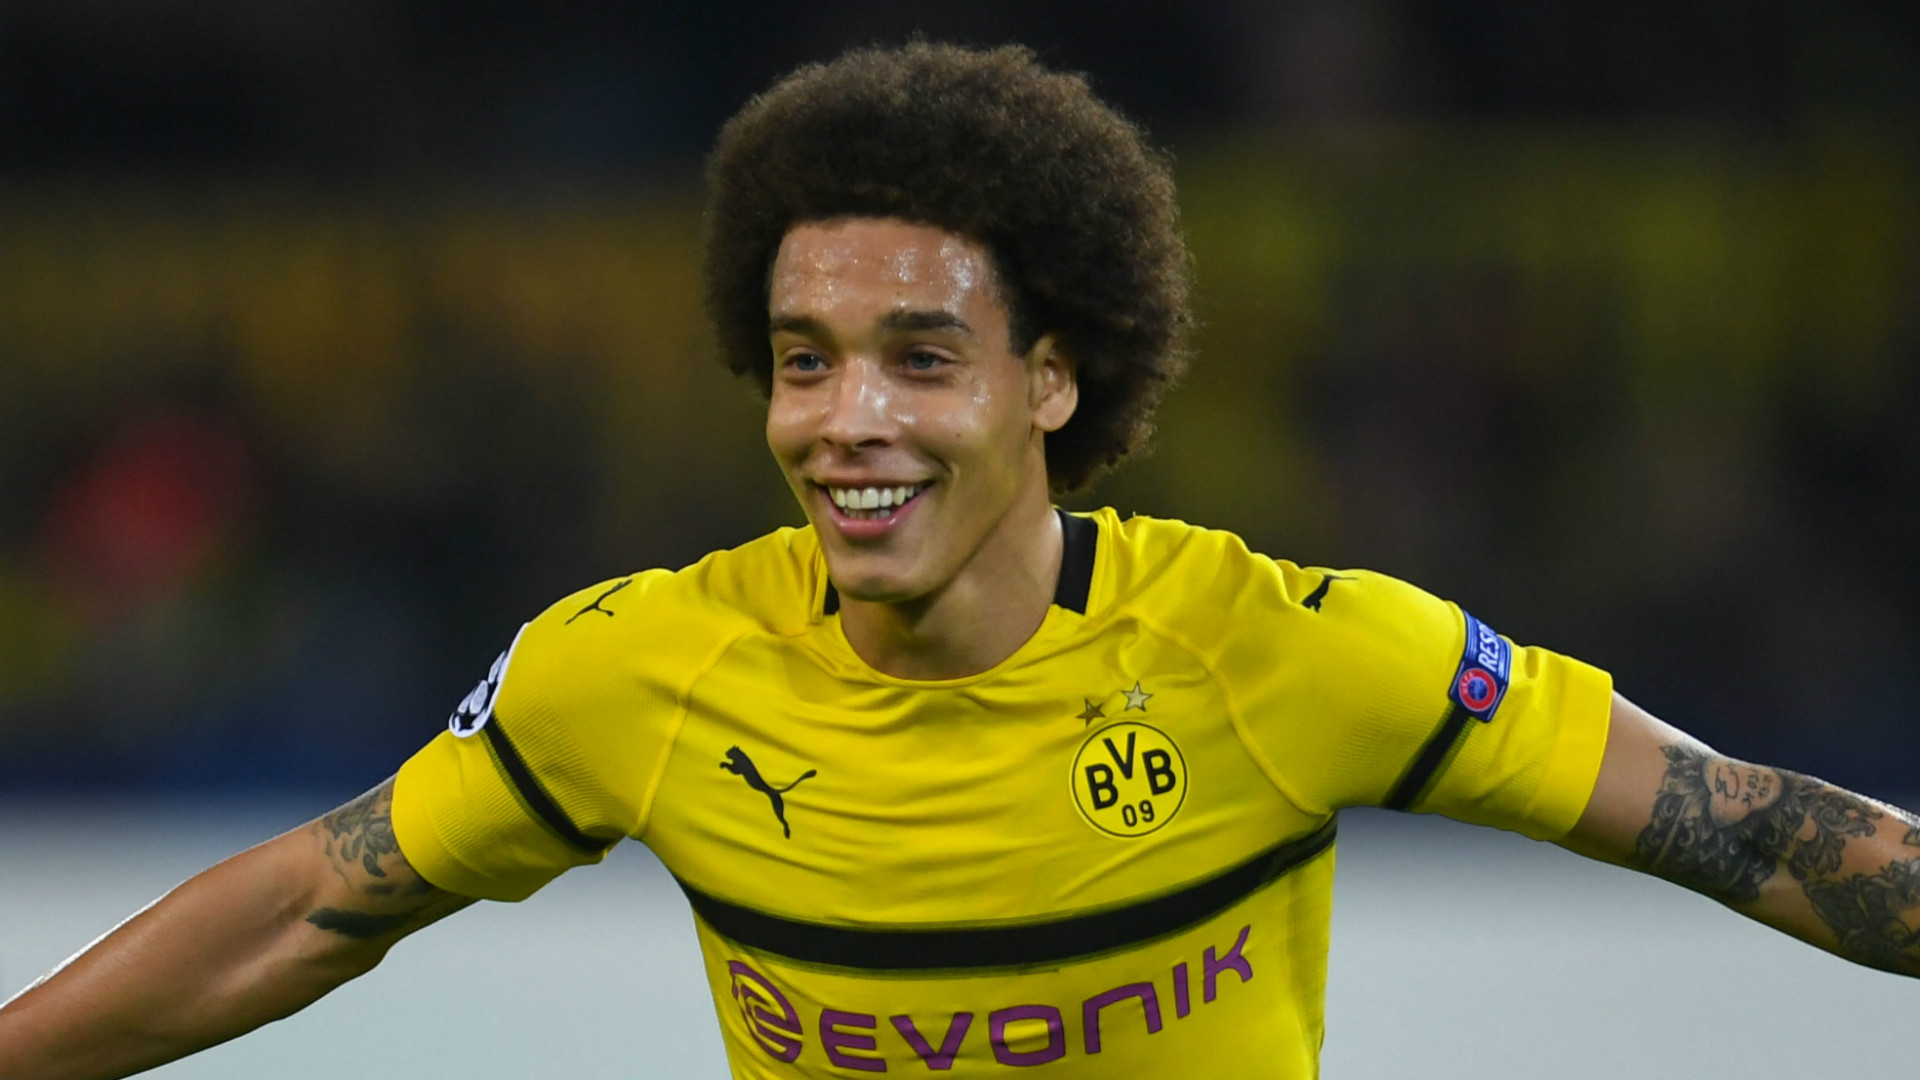 Borussia Dortmund news: Witsel thinks Pulisic and Sancho could be ...